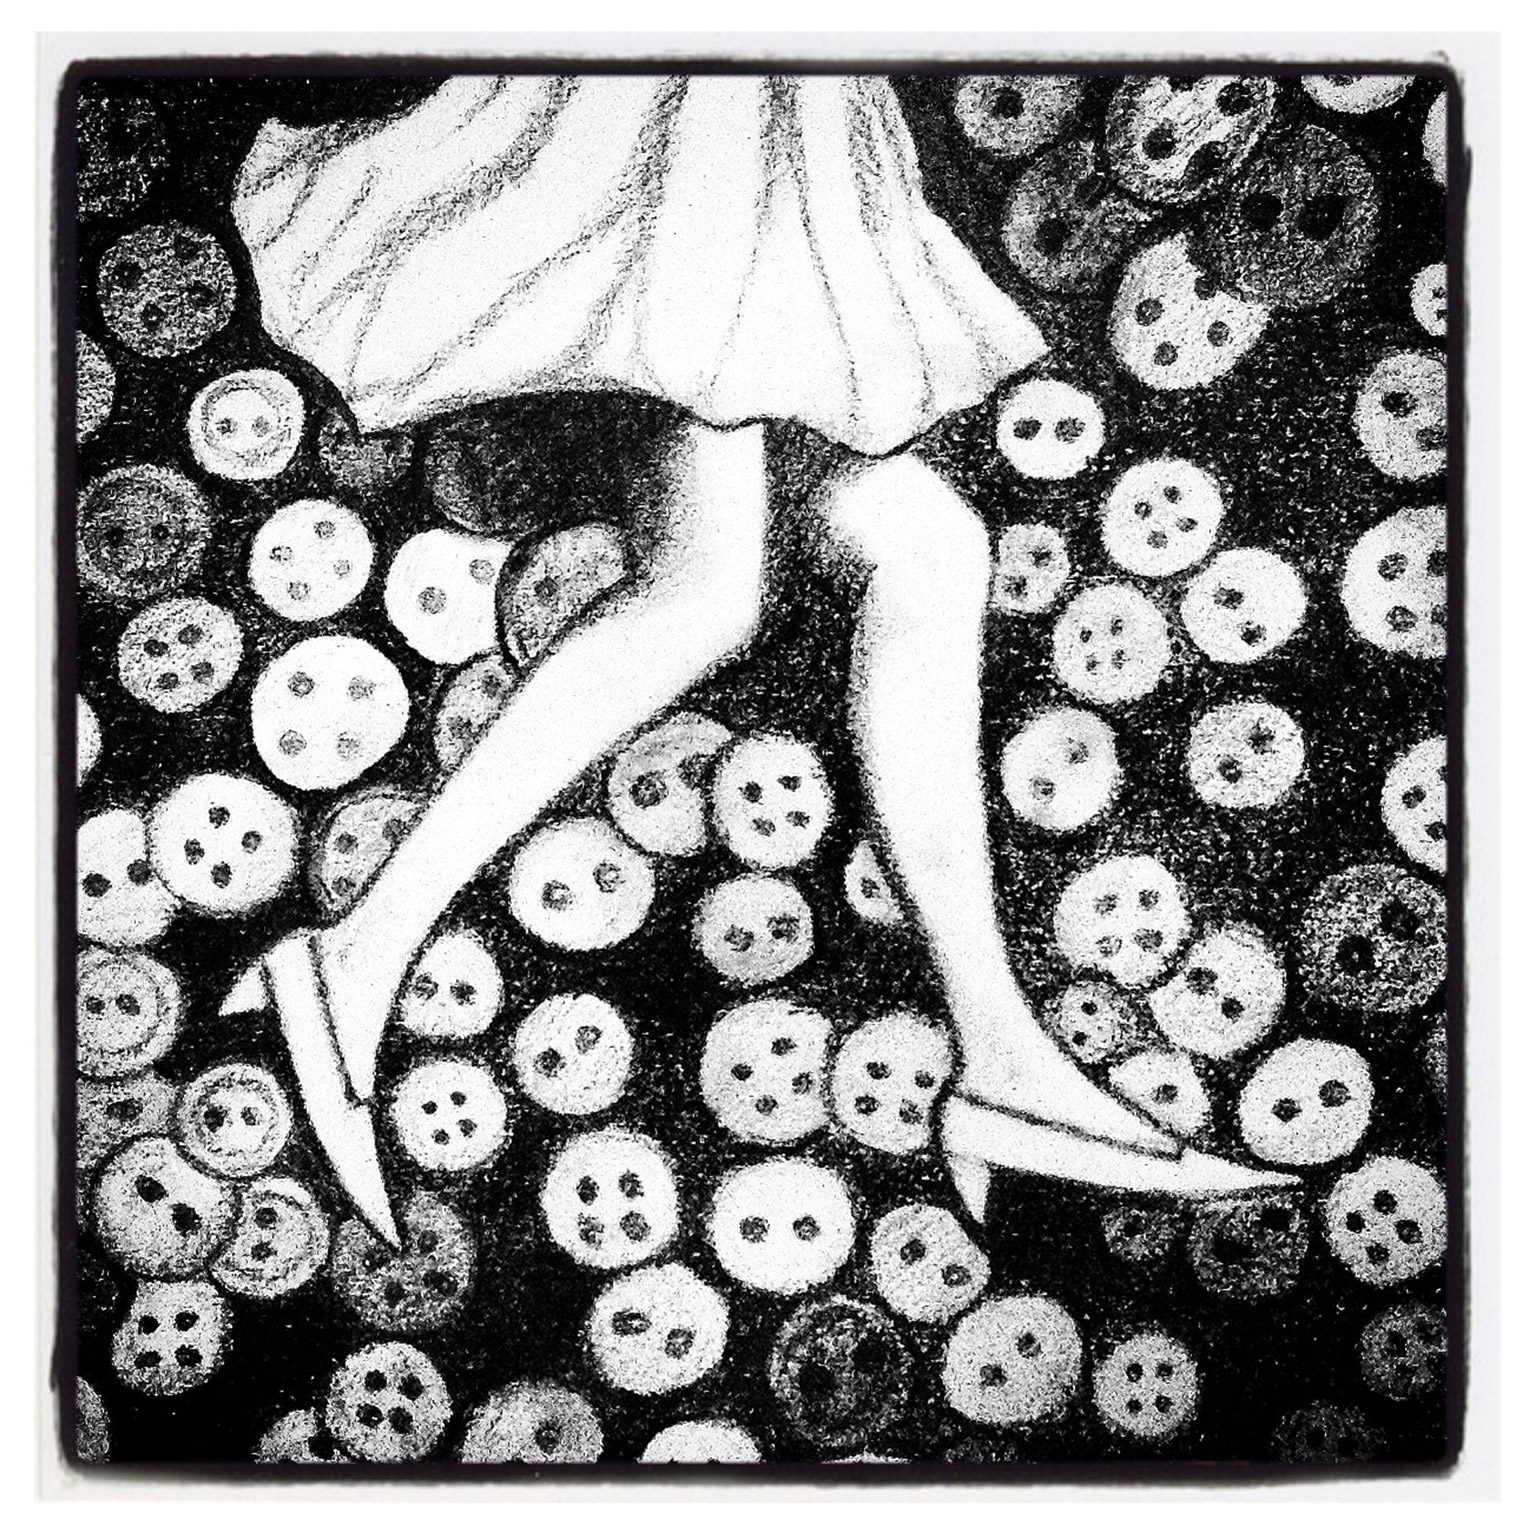 WALKING ON BUTTONS